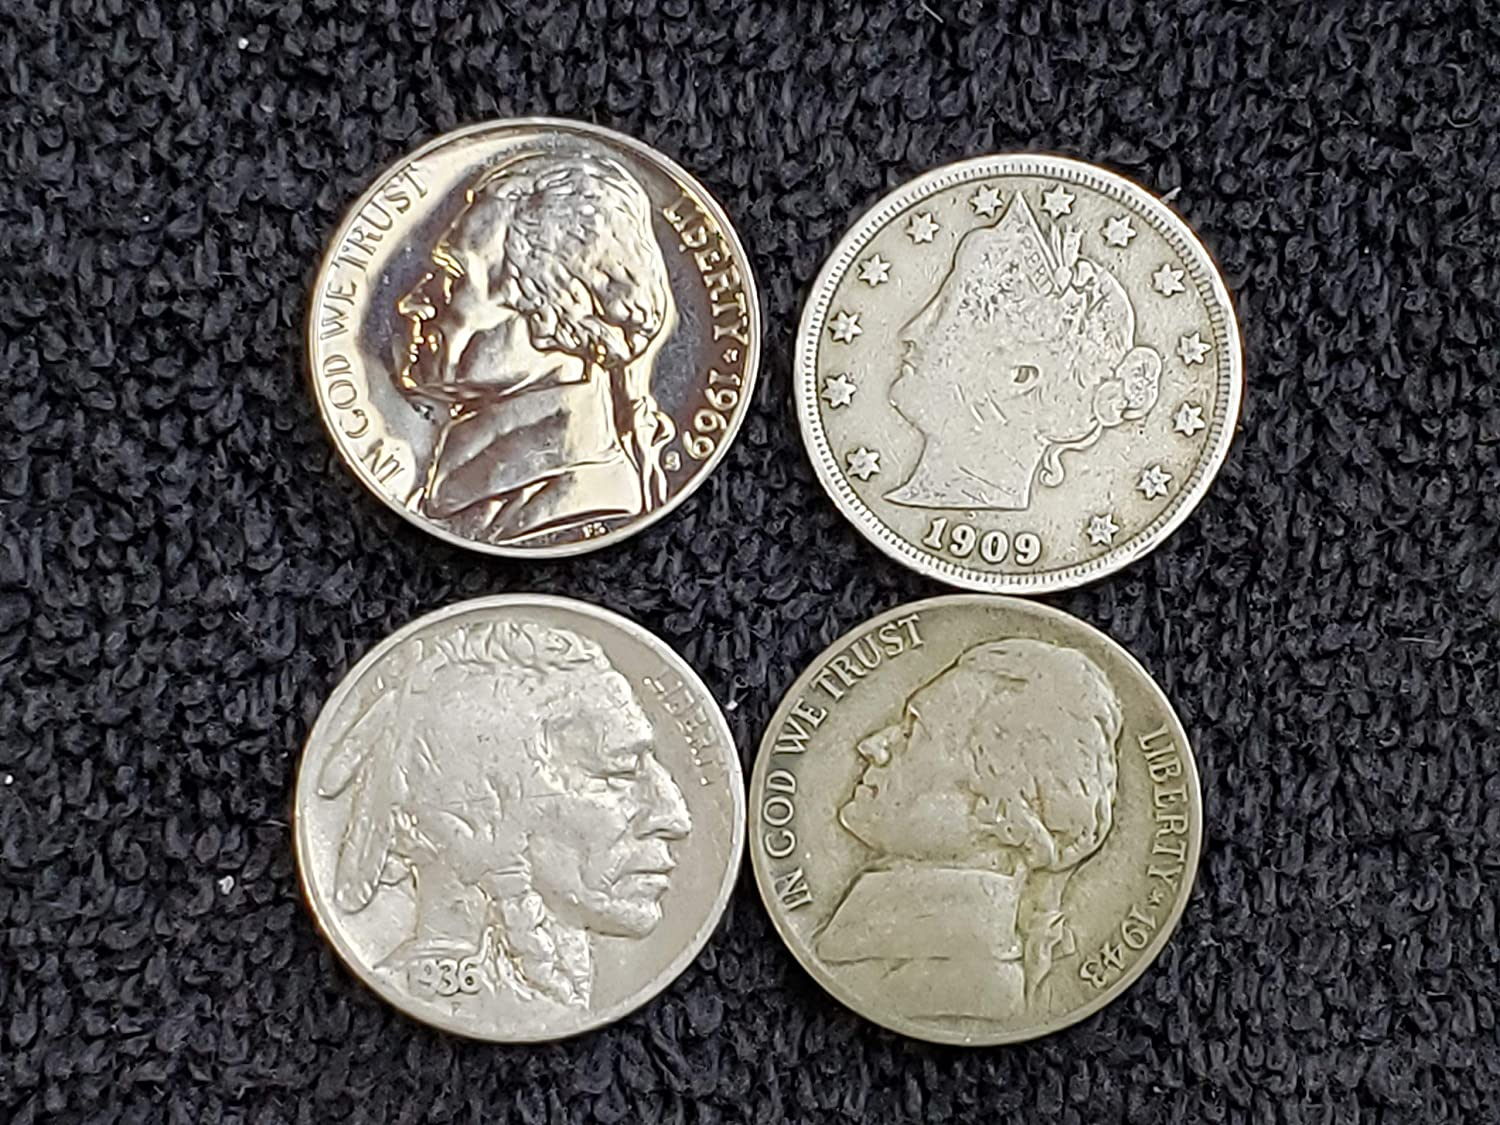 Lot of 4 Different Type Nickels - Liberty (1883-1912), Buffalo (1913-1938),  Silver War Nickel (1942-45) and Proof Jefferson (1956-1999) 5c All grade